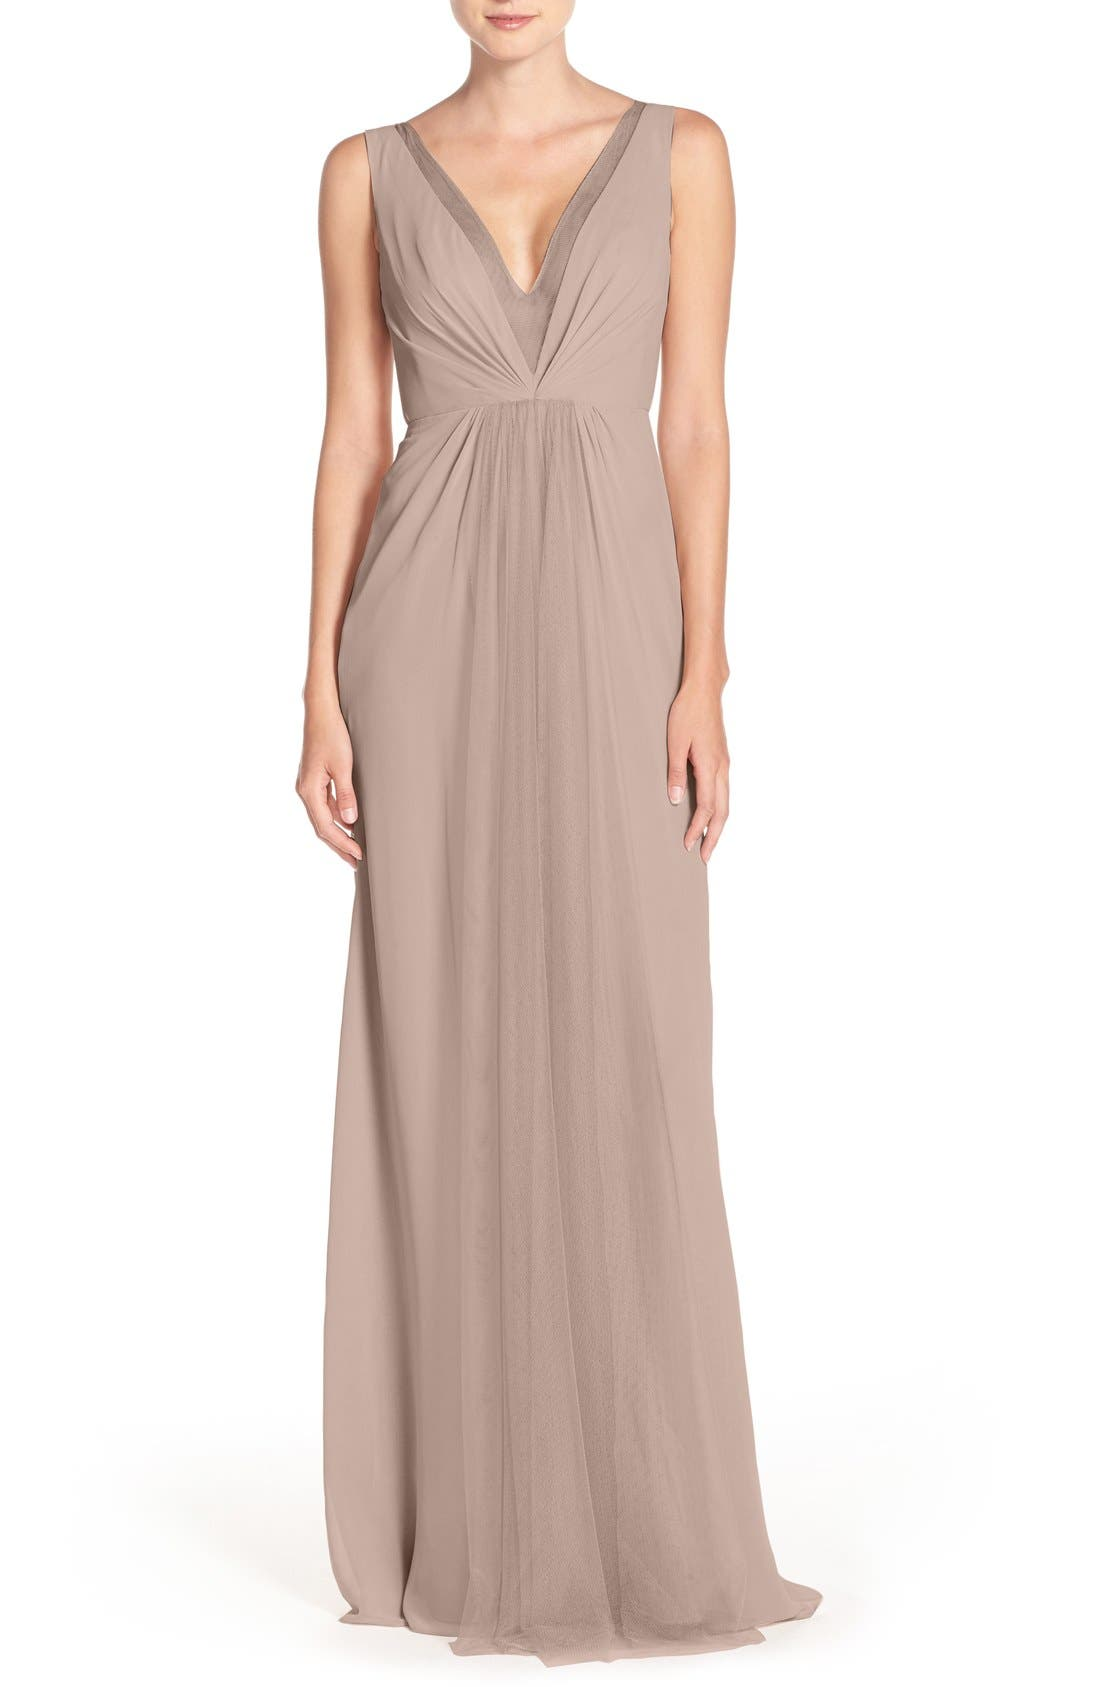 Alternate Image 1 Selected - Monique Lhuillier Bridesmaids Deep V-Neck Chiffon & Tulle Gown